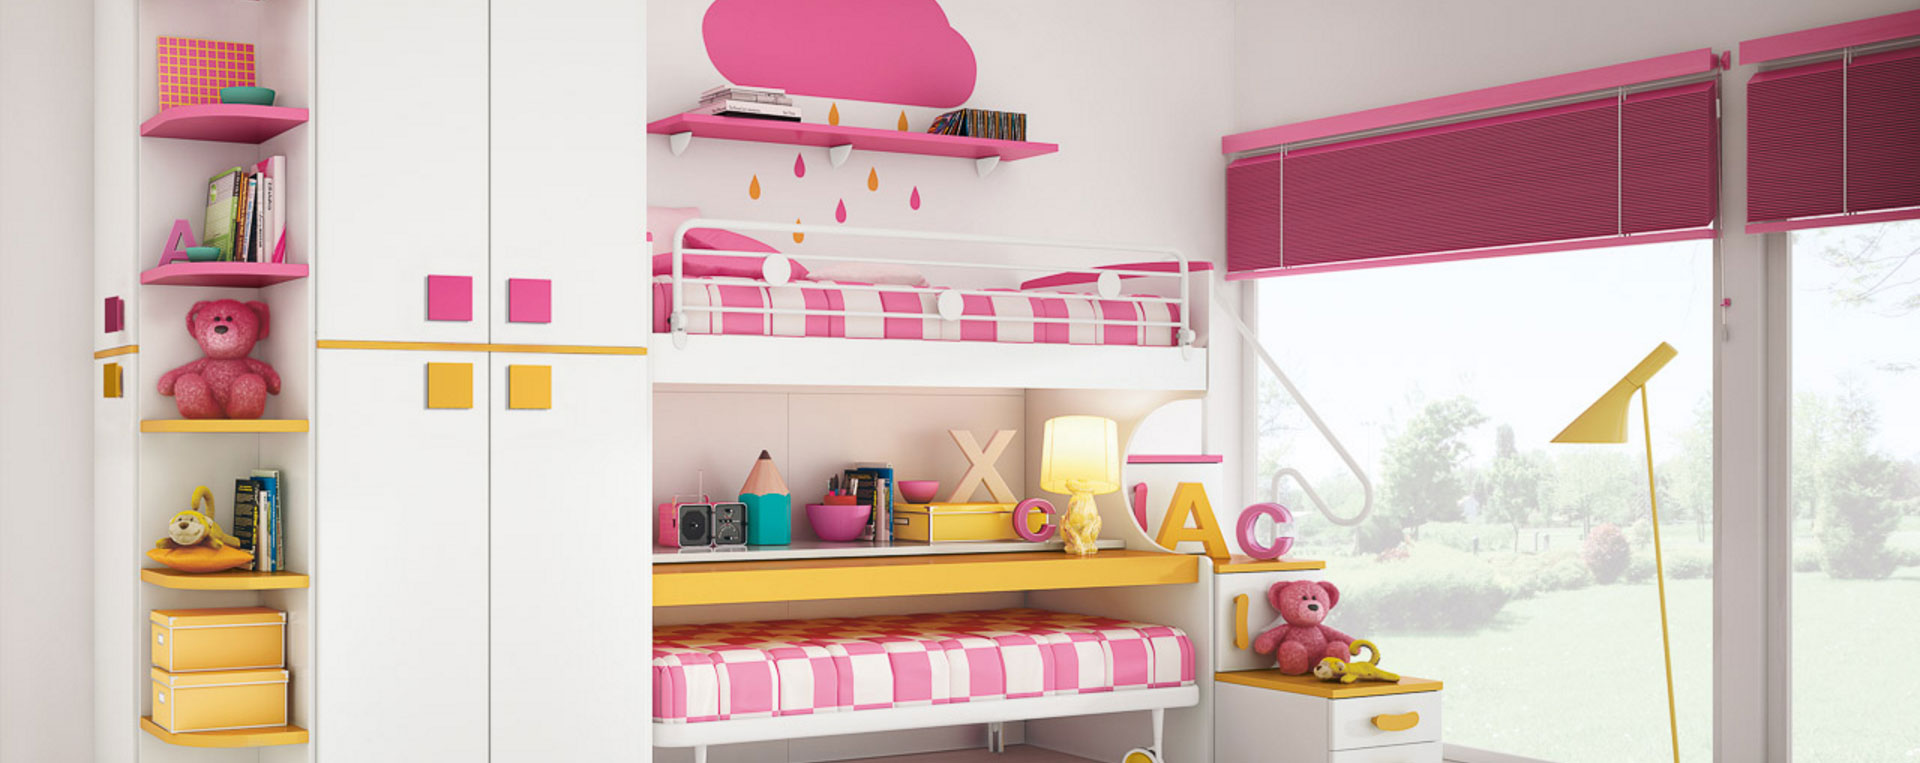 Camerette in offerta a torino colombini arcadia baby for Ikea torino camerette